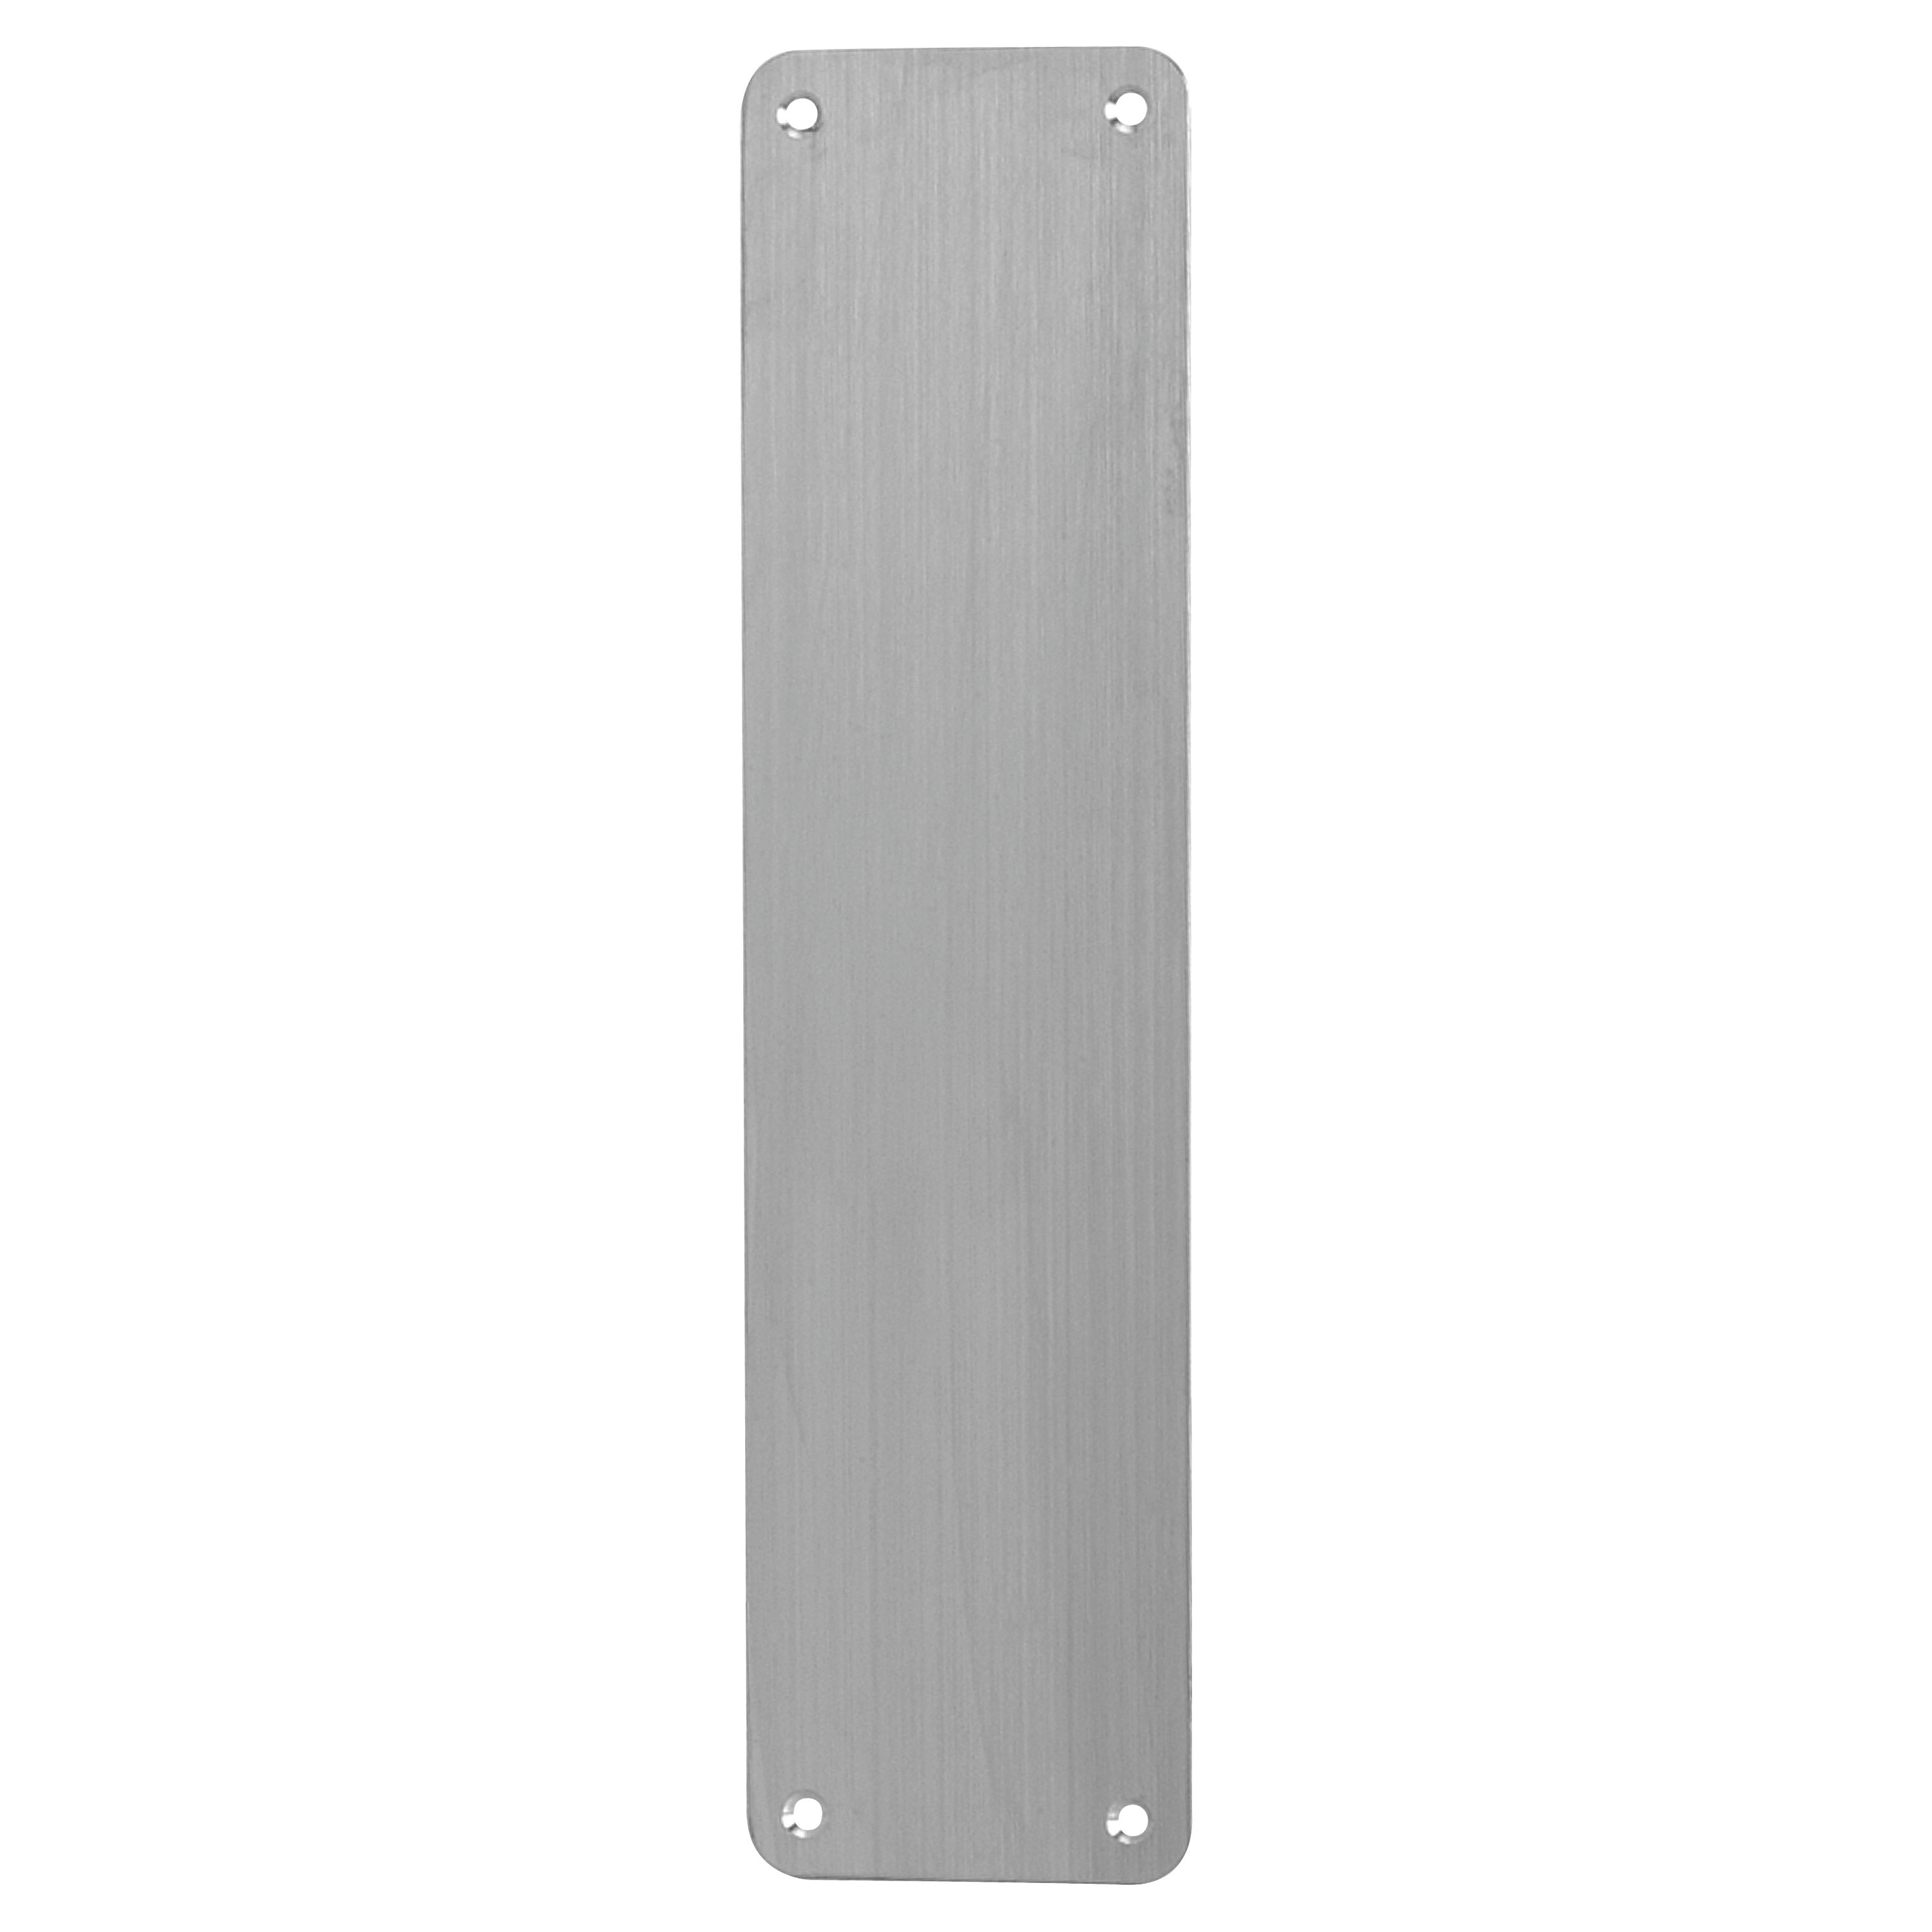 Altro Plain Finger Plate - 350 x 75 x 1.5mm - Satin Stainless)